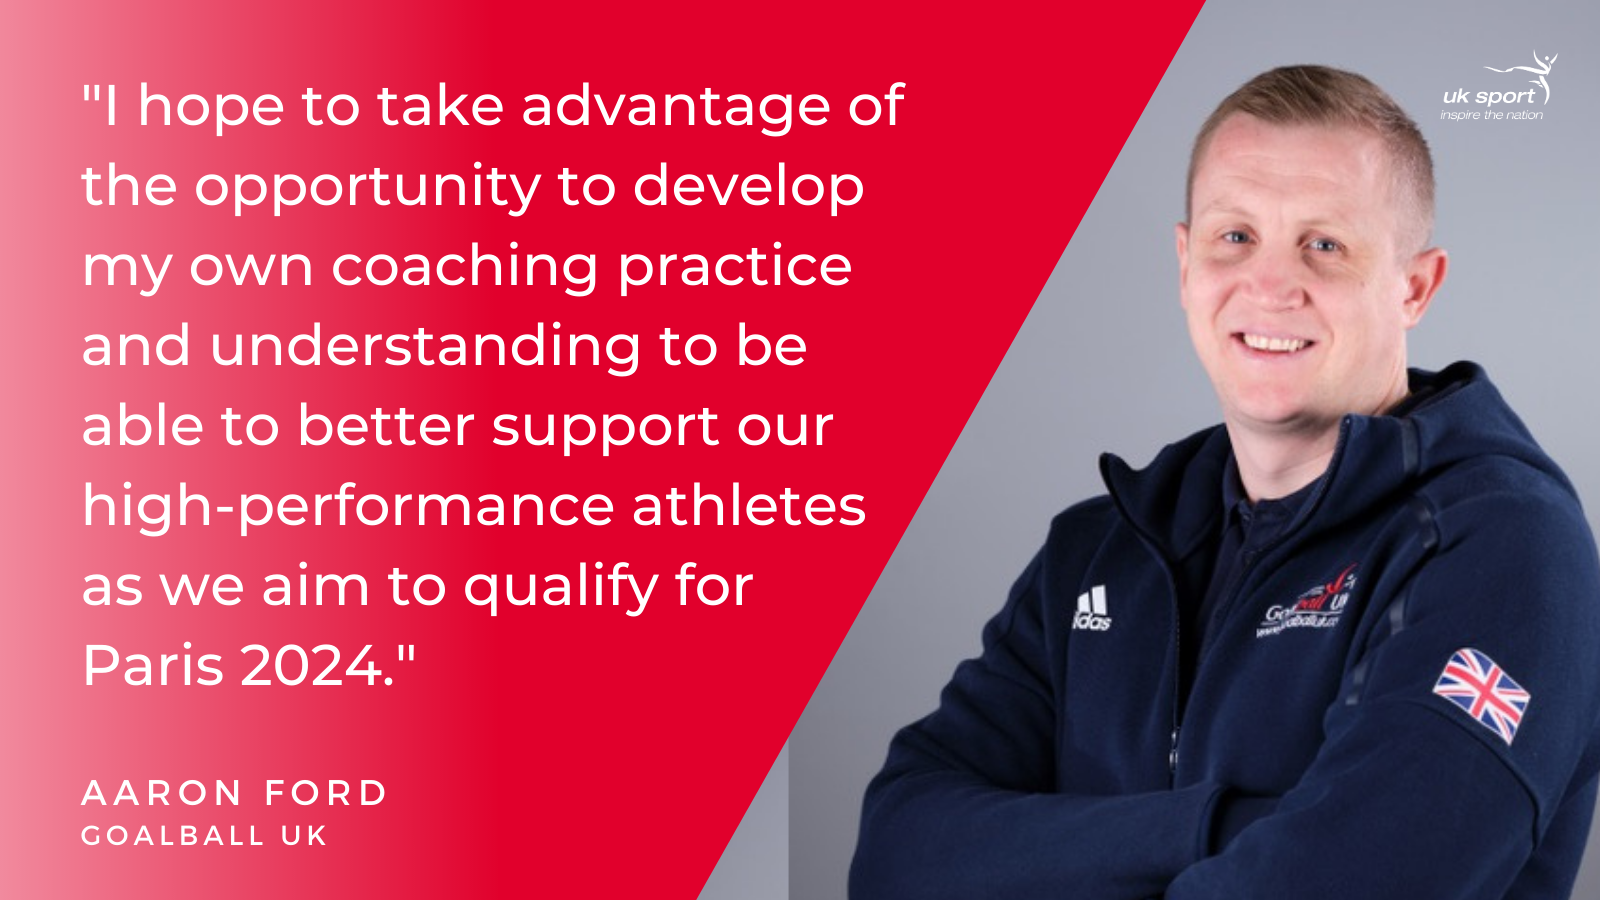 Aaron Ford, GB Women's Head Coach providing his thoughts on being accepted onto the high performance apprenticeship.